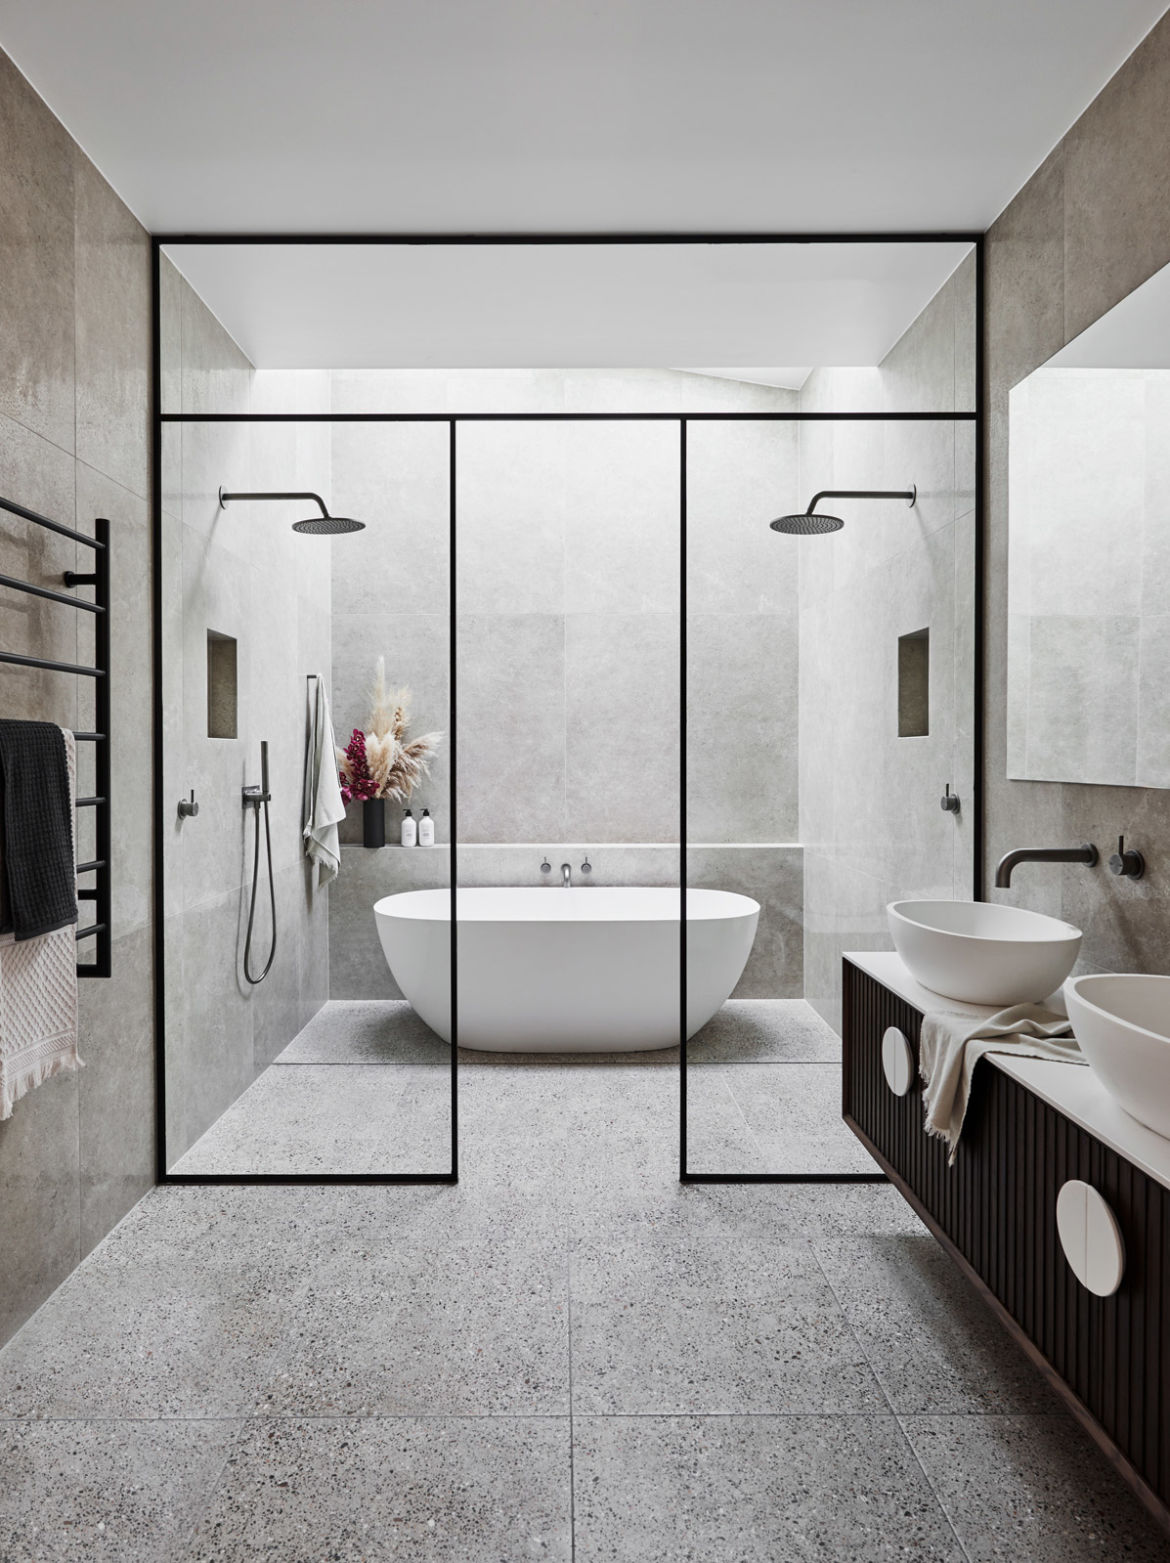 2020 Bathroom Design Trends: This Year And Beyond - TLC Interiors